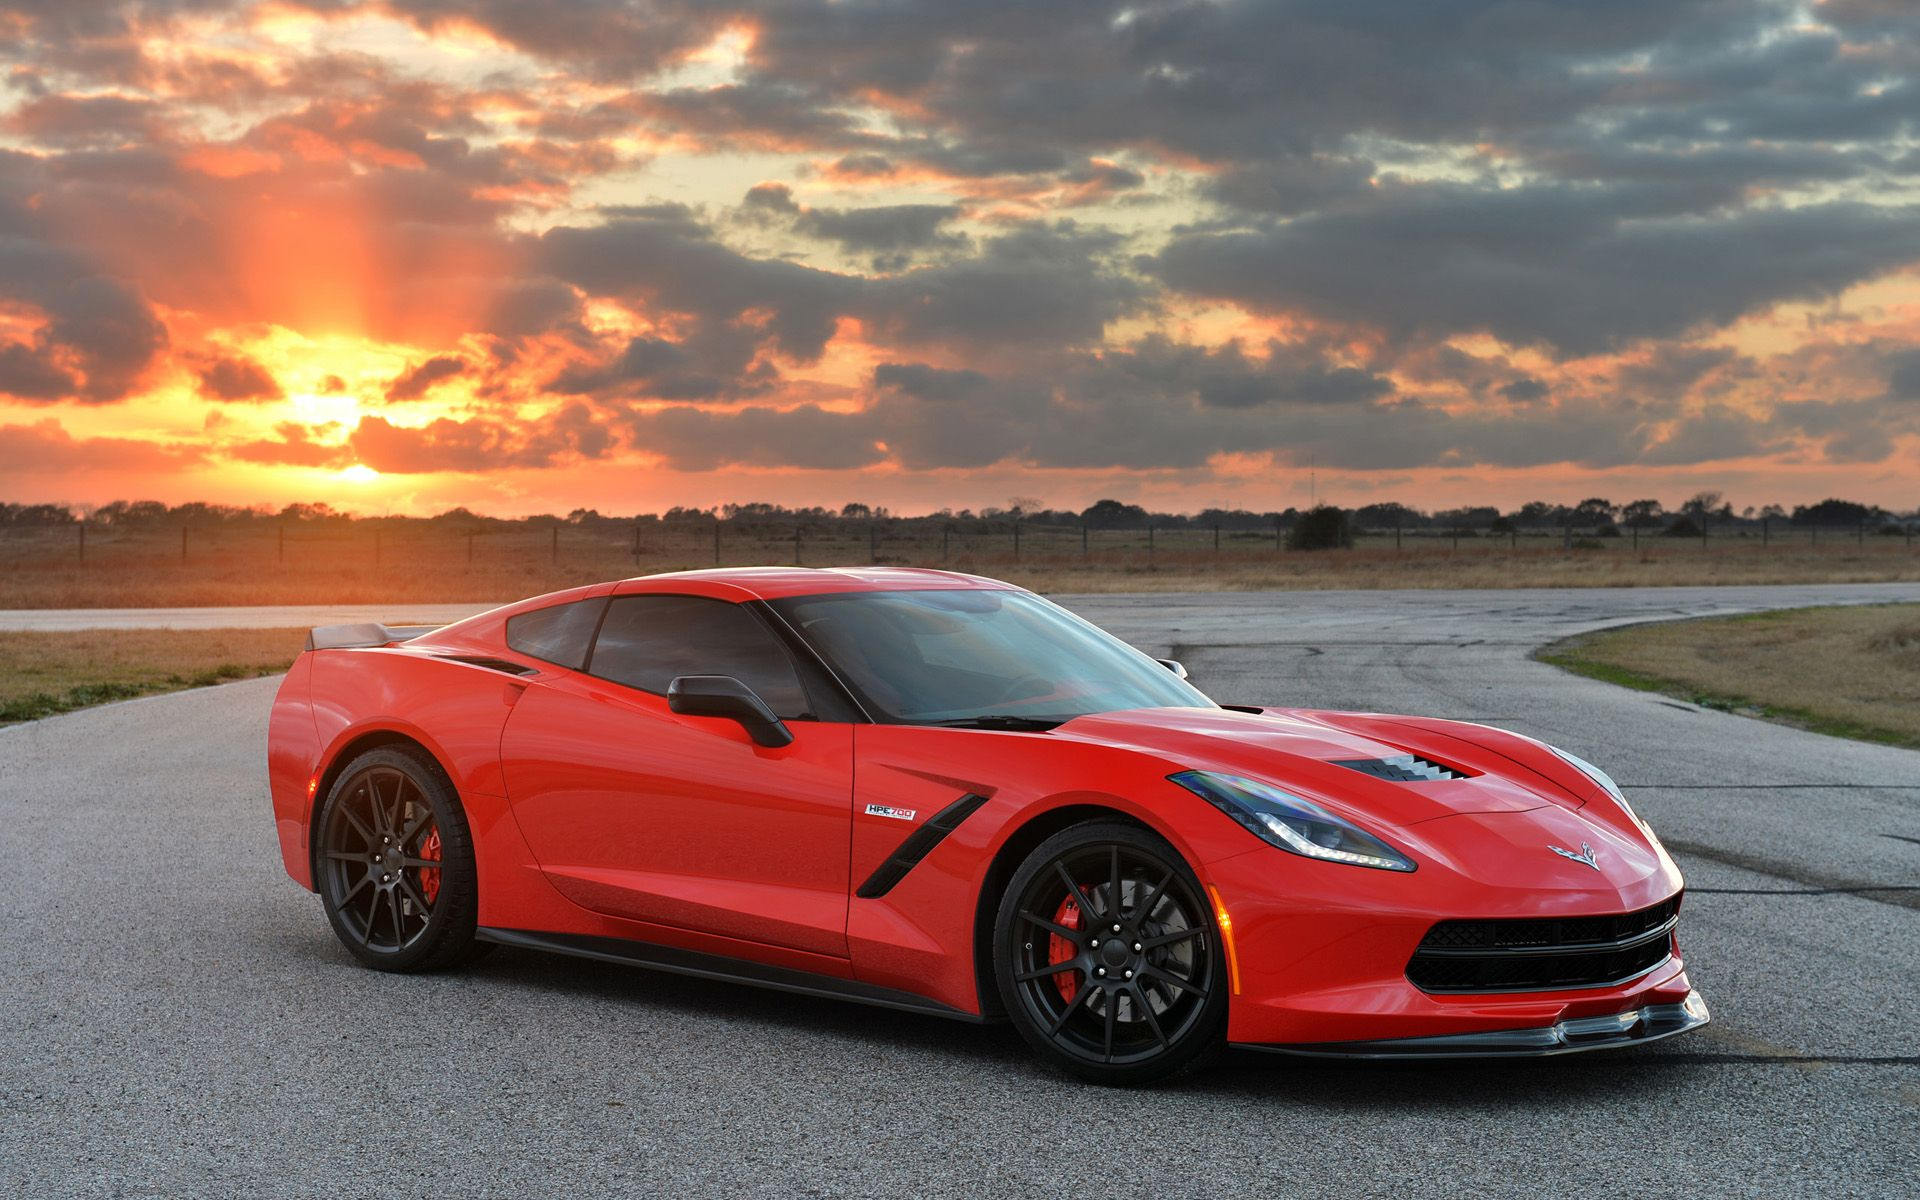 Corvette Hd Wallpaper Chevrolet Corvette Stingray Corvette Stingray Corvette C7 Stingray